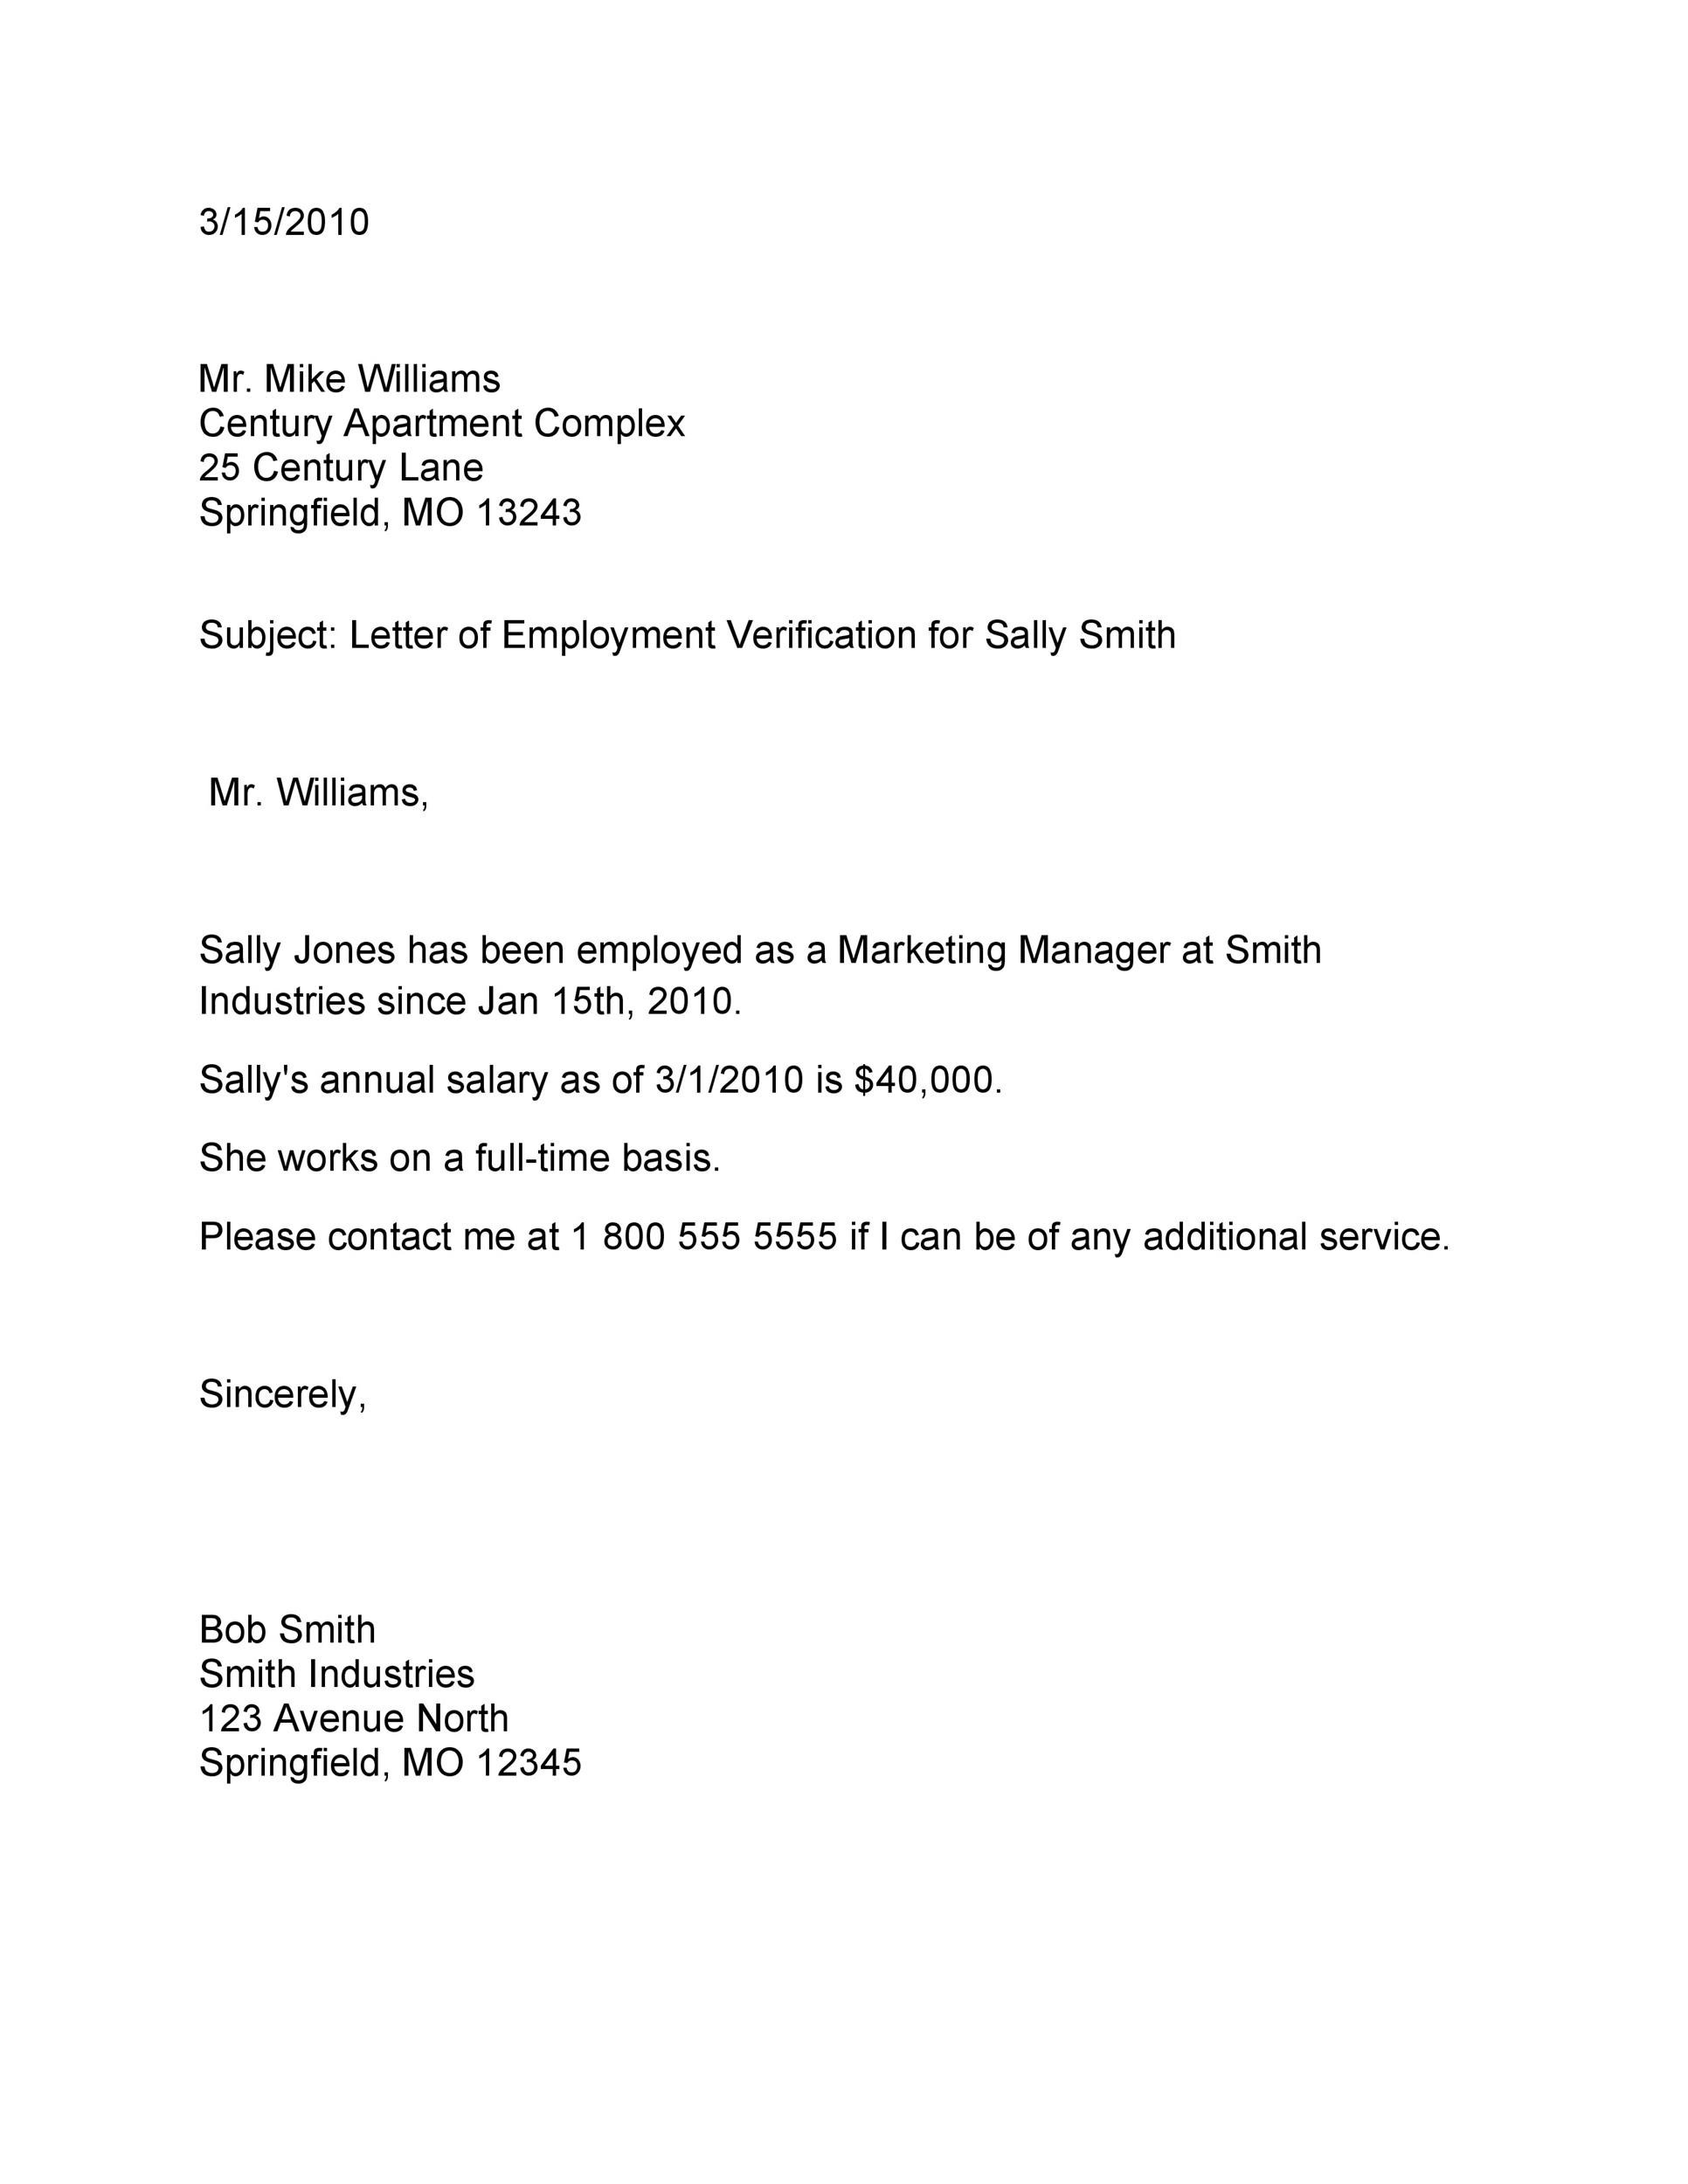 Proof Of Employment Letter Suyhi Margarethaydon Com